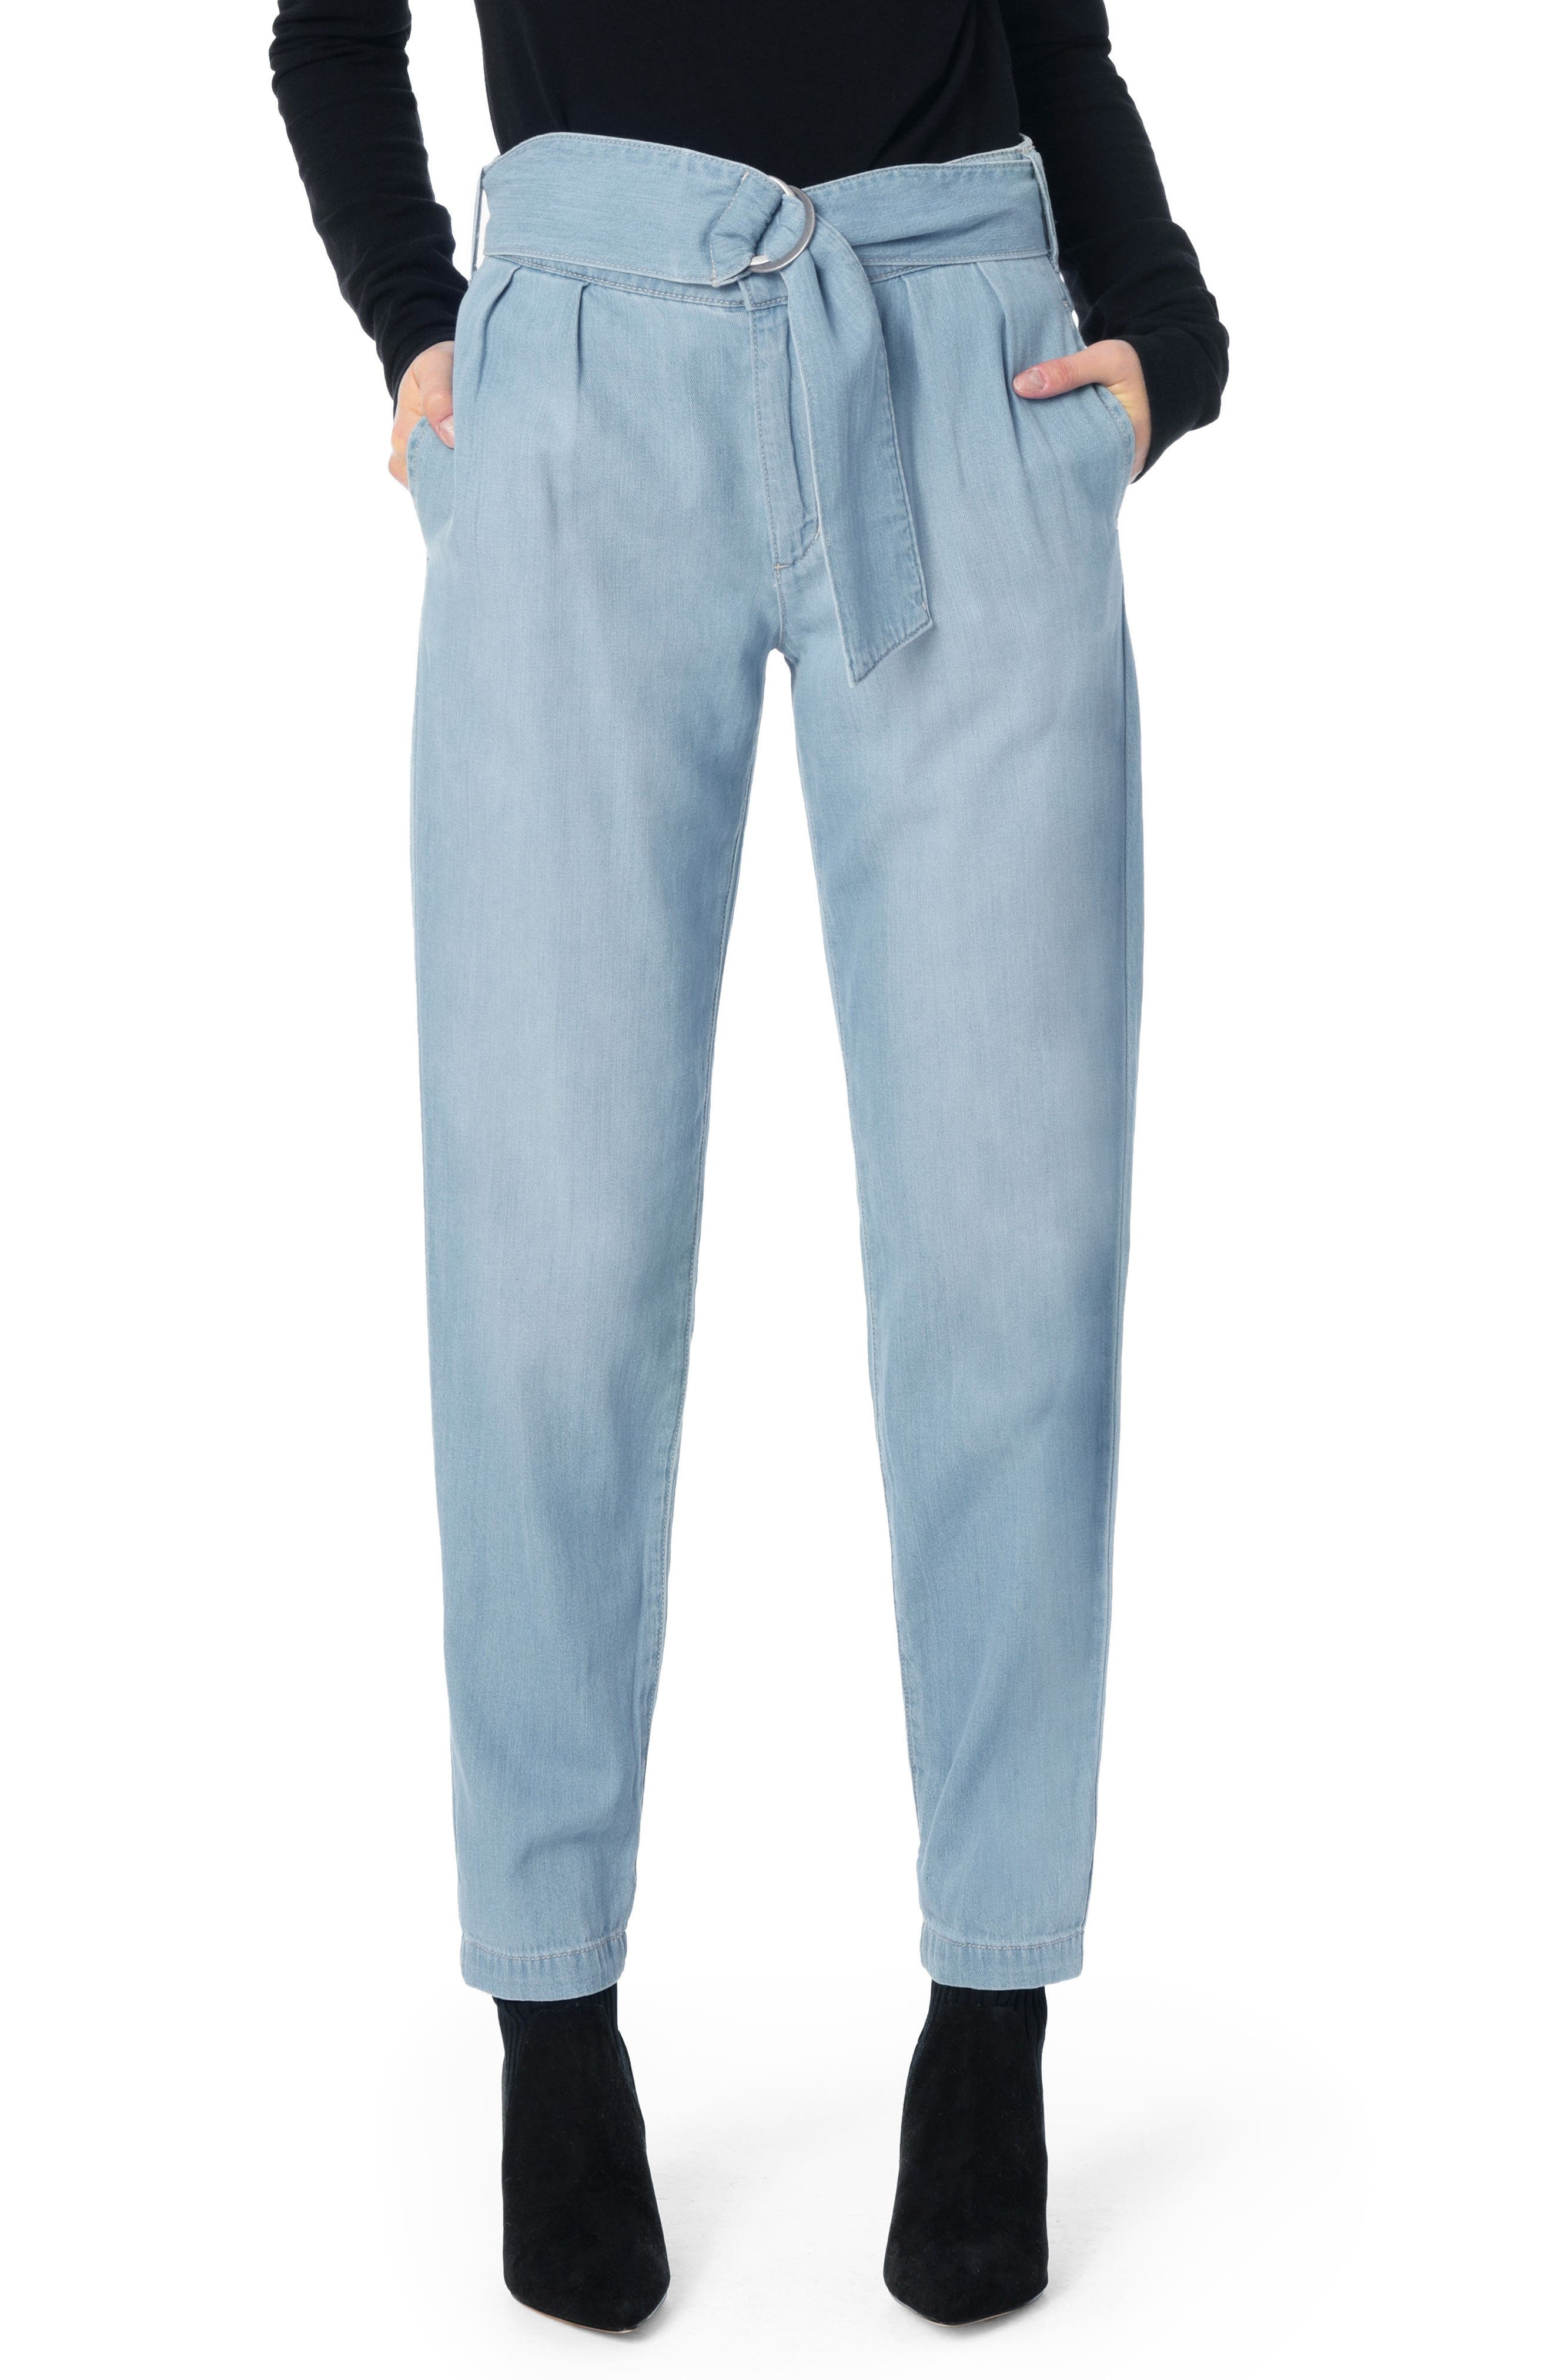 Paperbag Trouser Pants,                         Main,                         color, Marianne